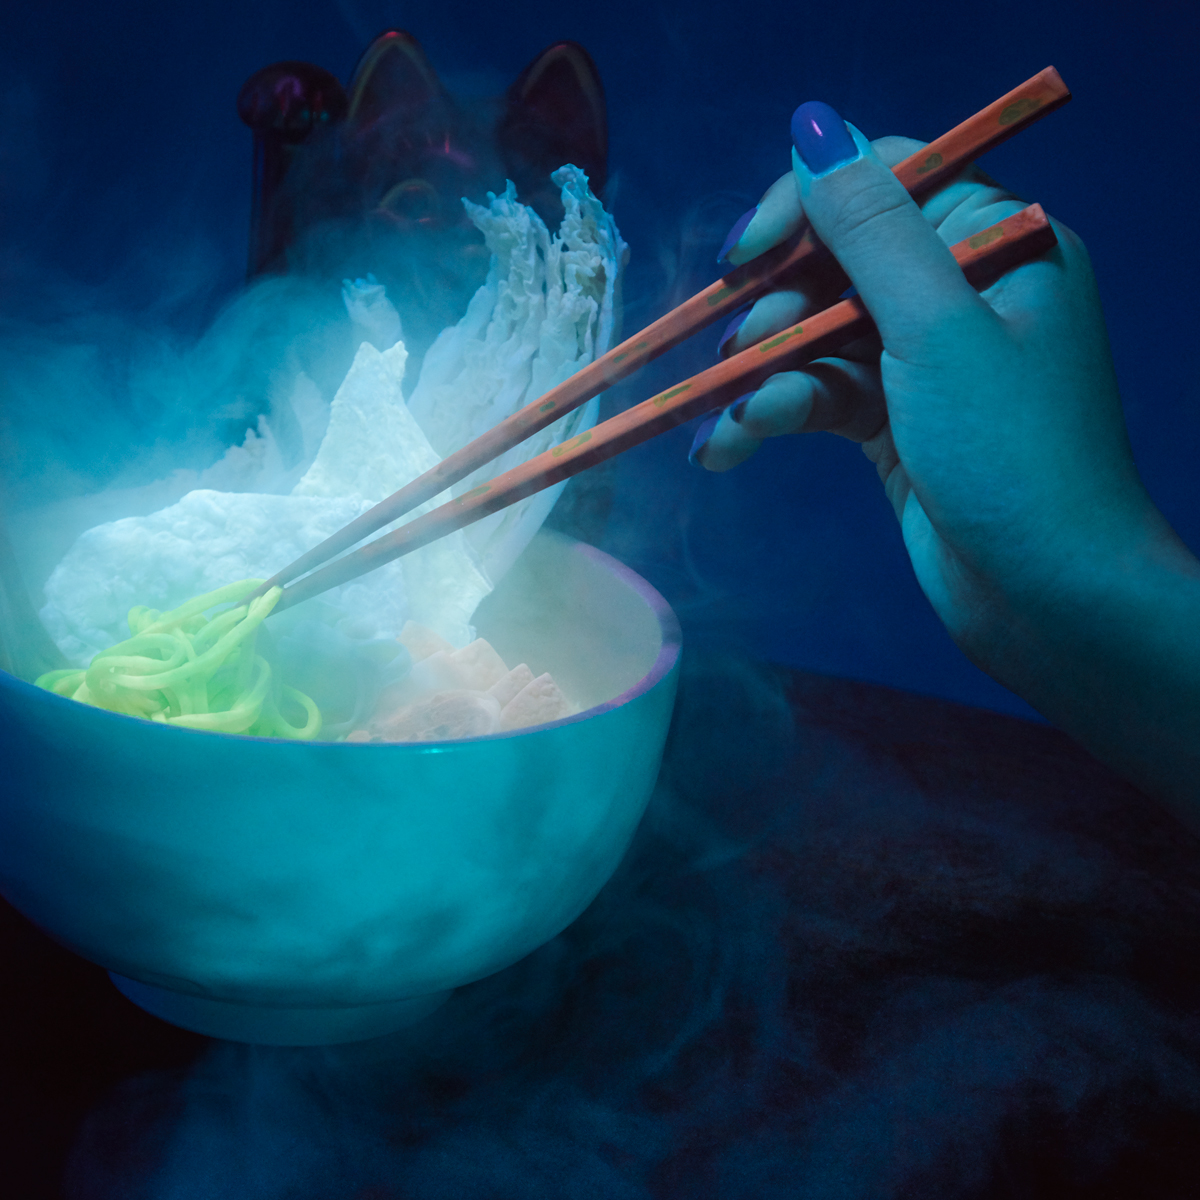 Glow-in-the-dark ramen, Nakamura.ke